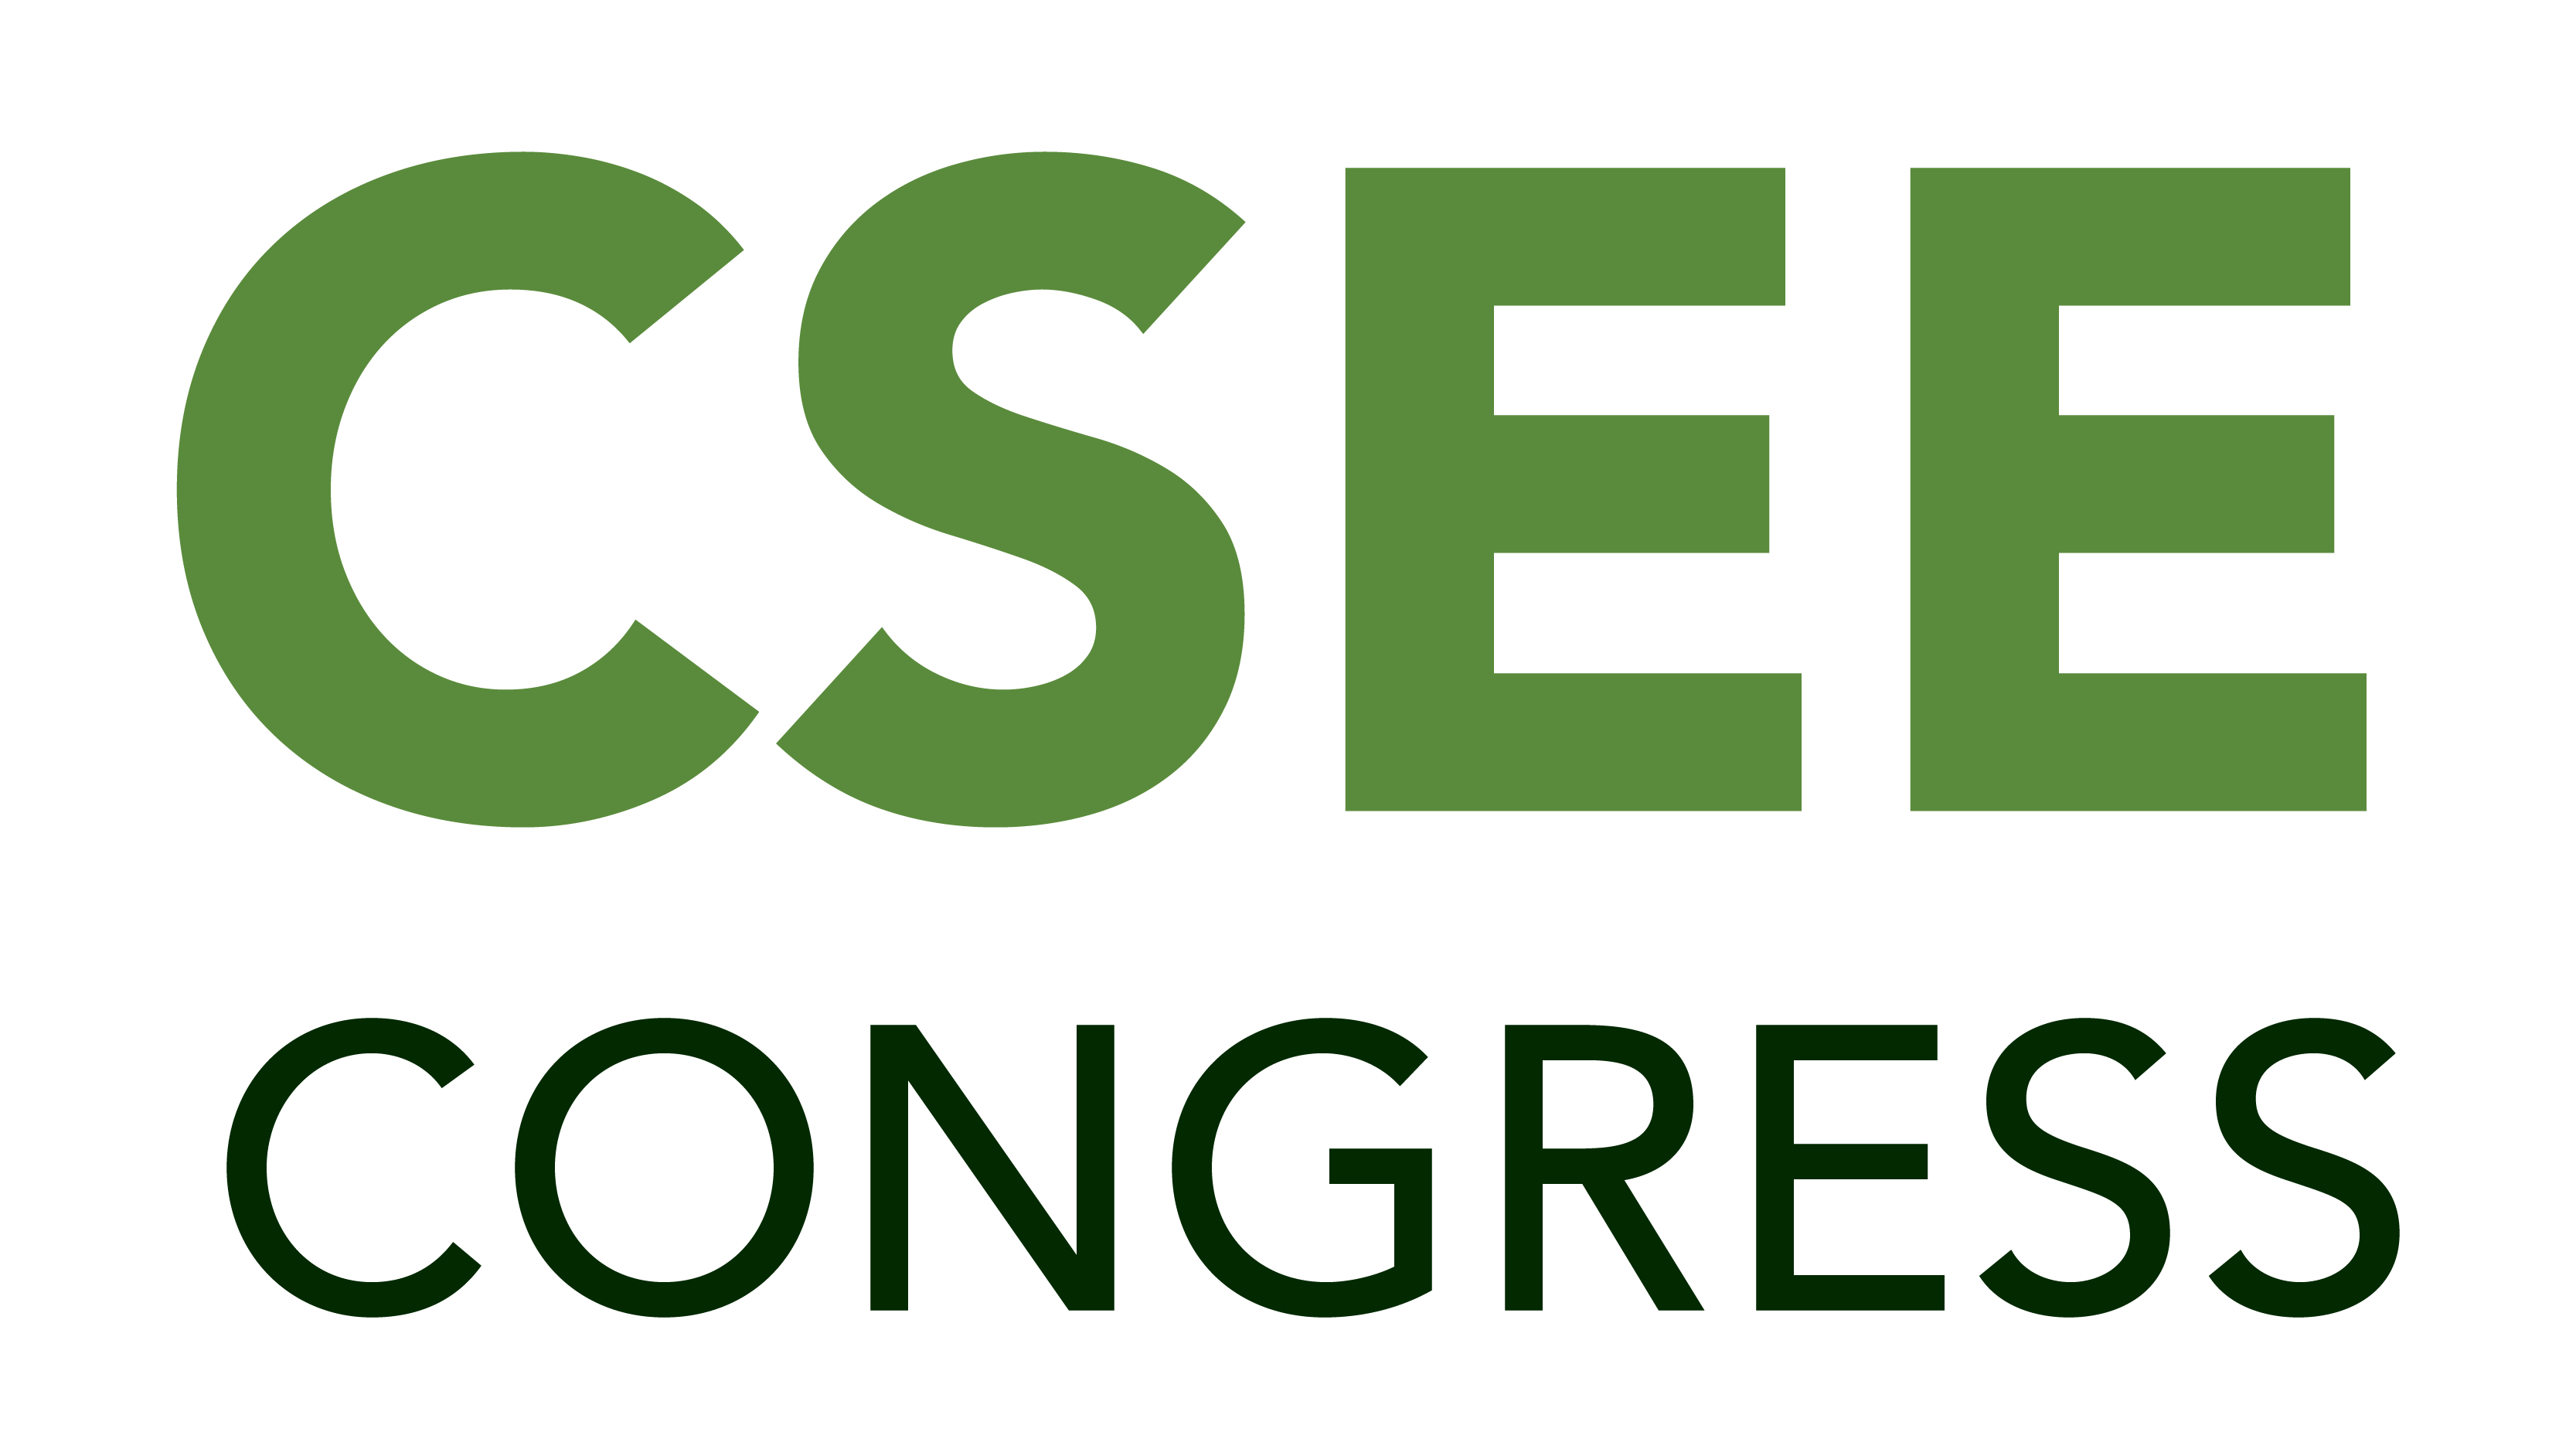 3rd World Congress on Civil, Structural, and Environmental Engineering, Budapest, Hungary, April 8 - 10, 2018